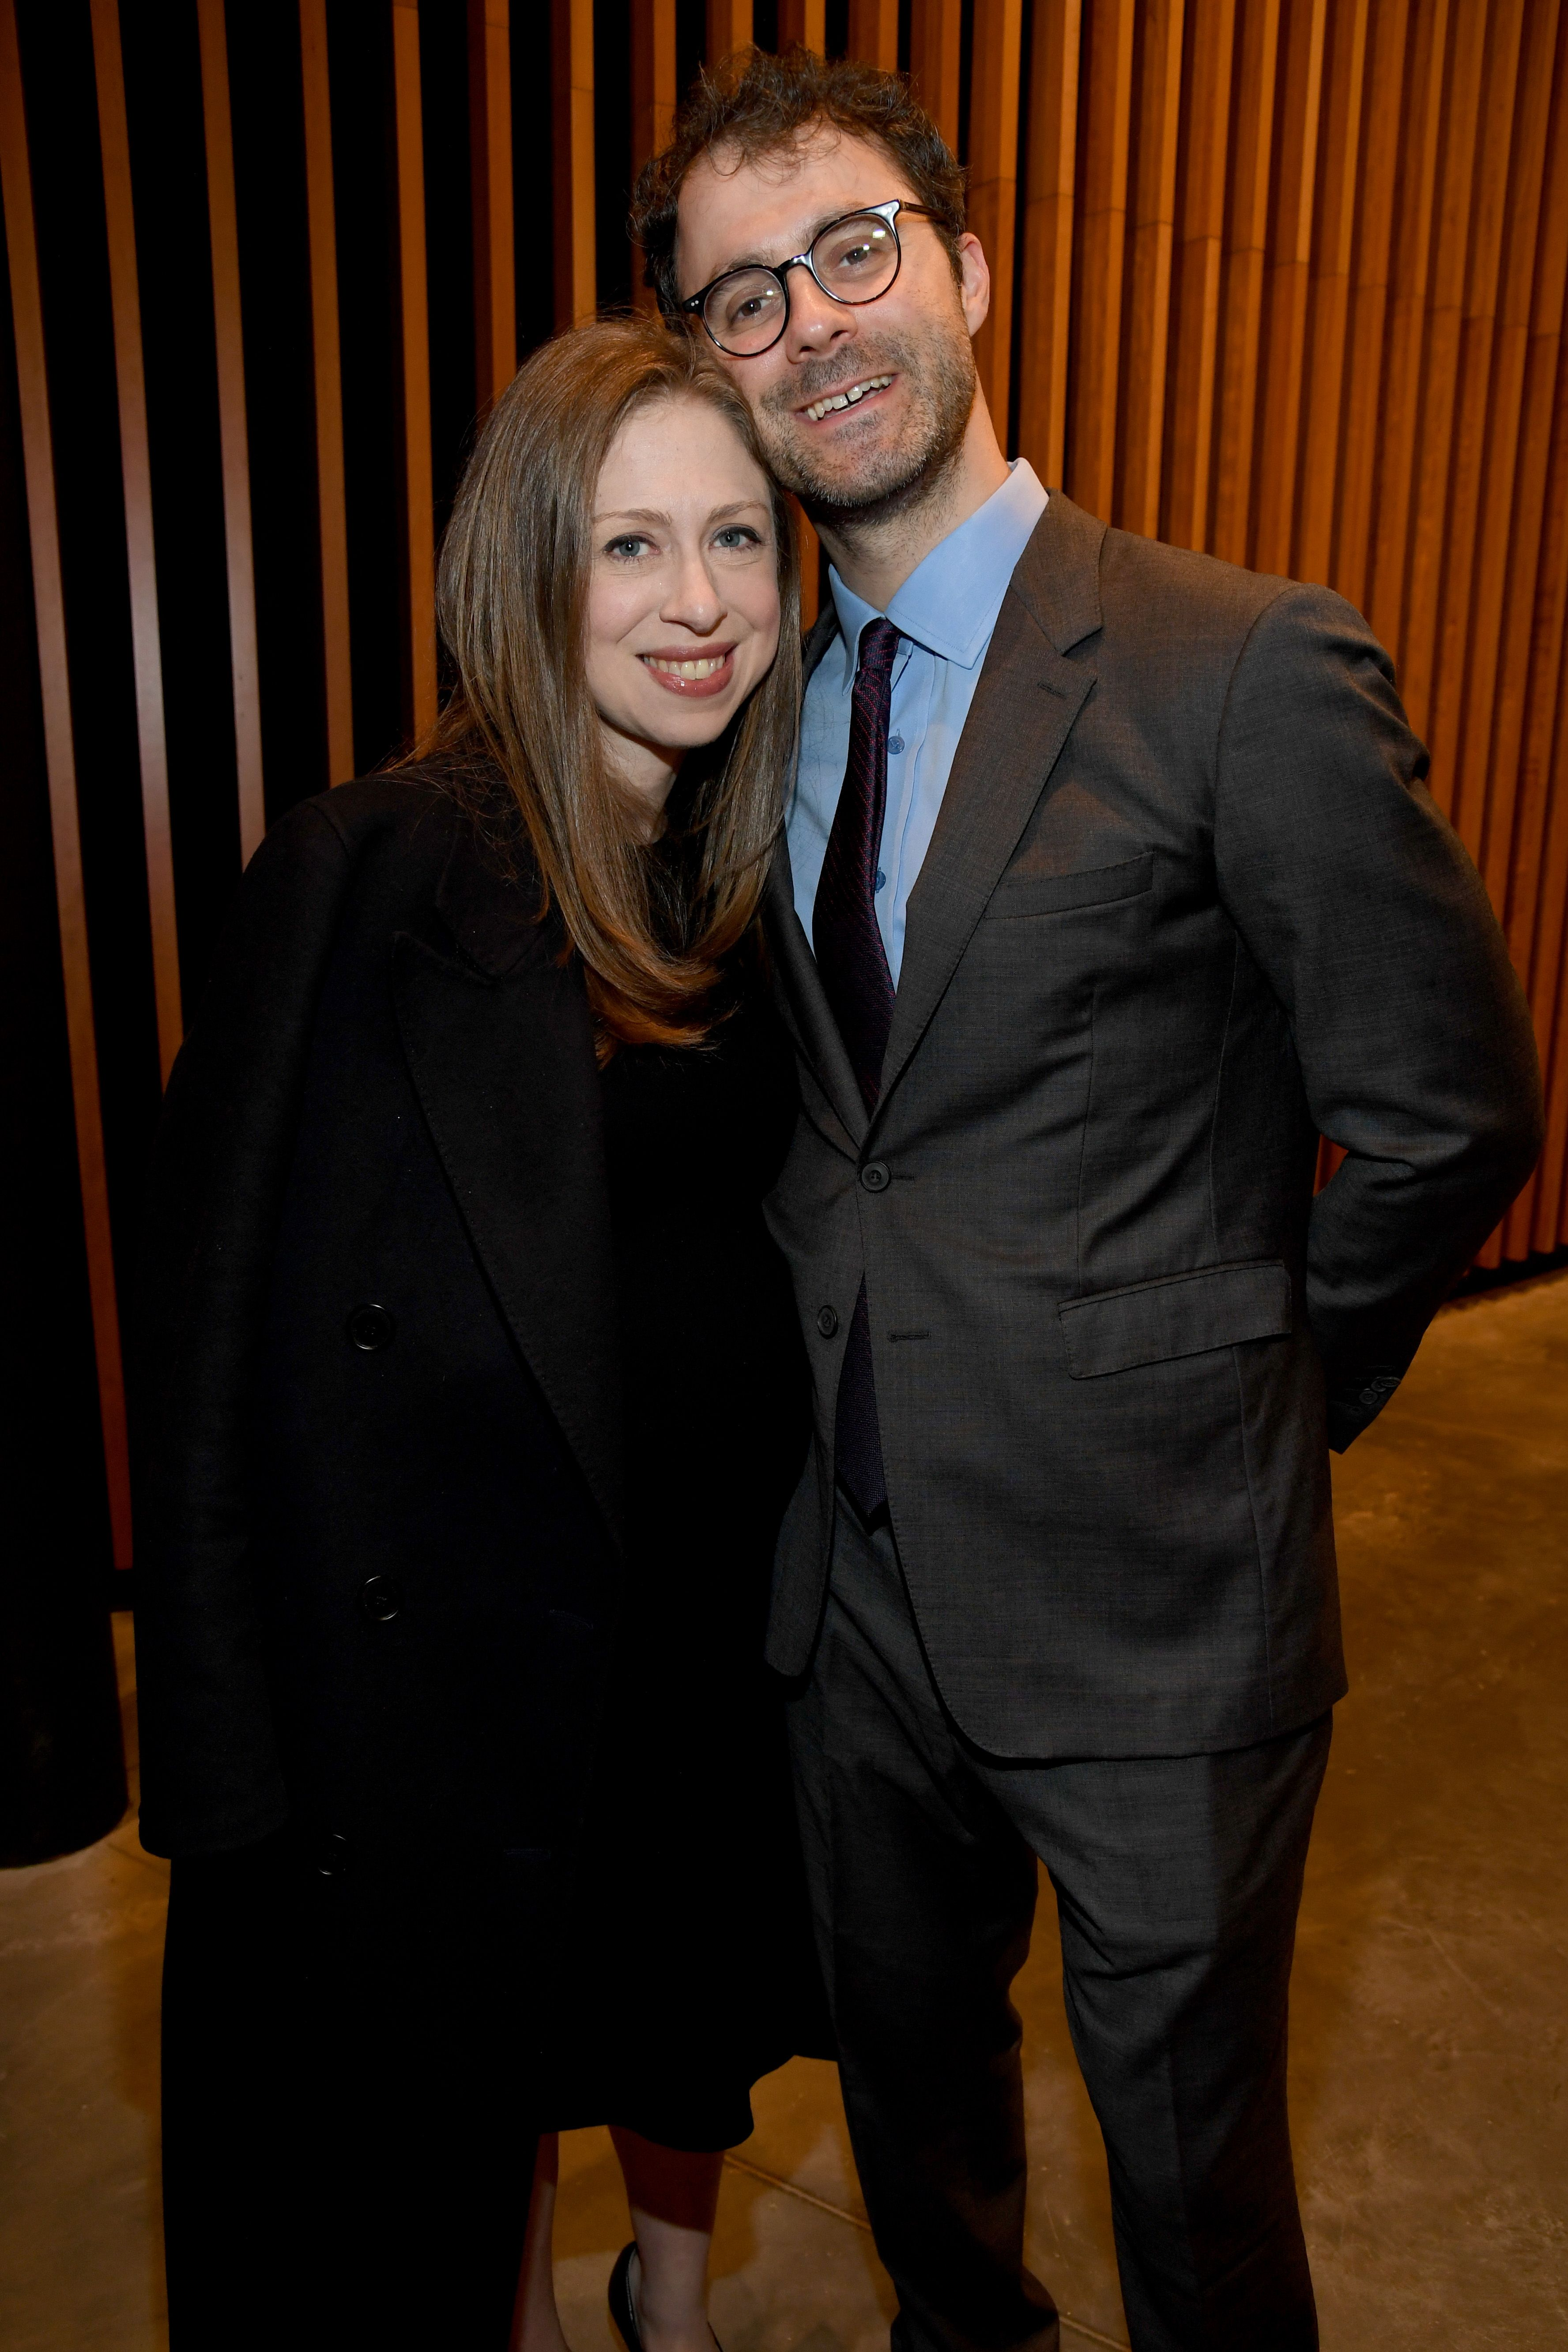 Chelsea clinton dating dating a guy shorter than you